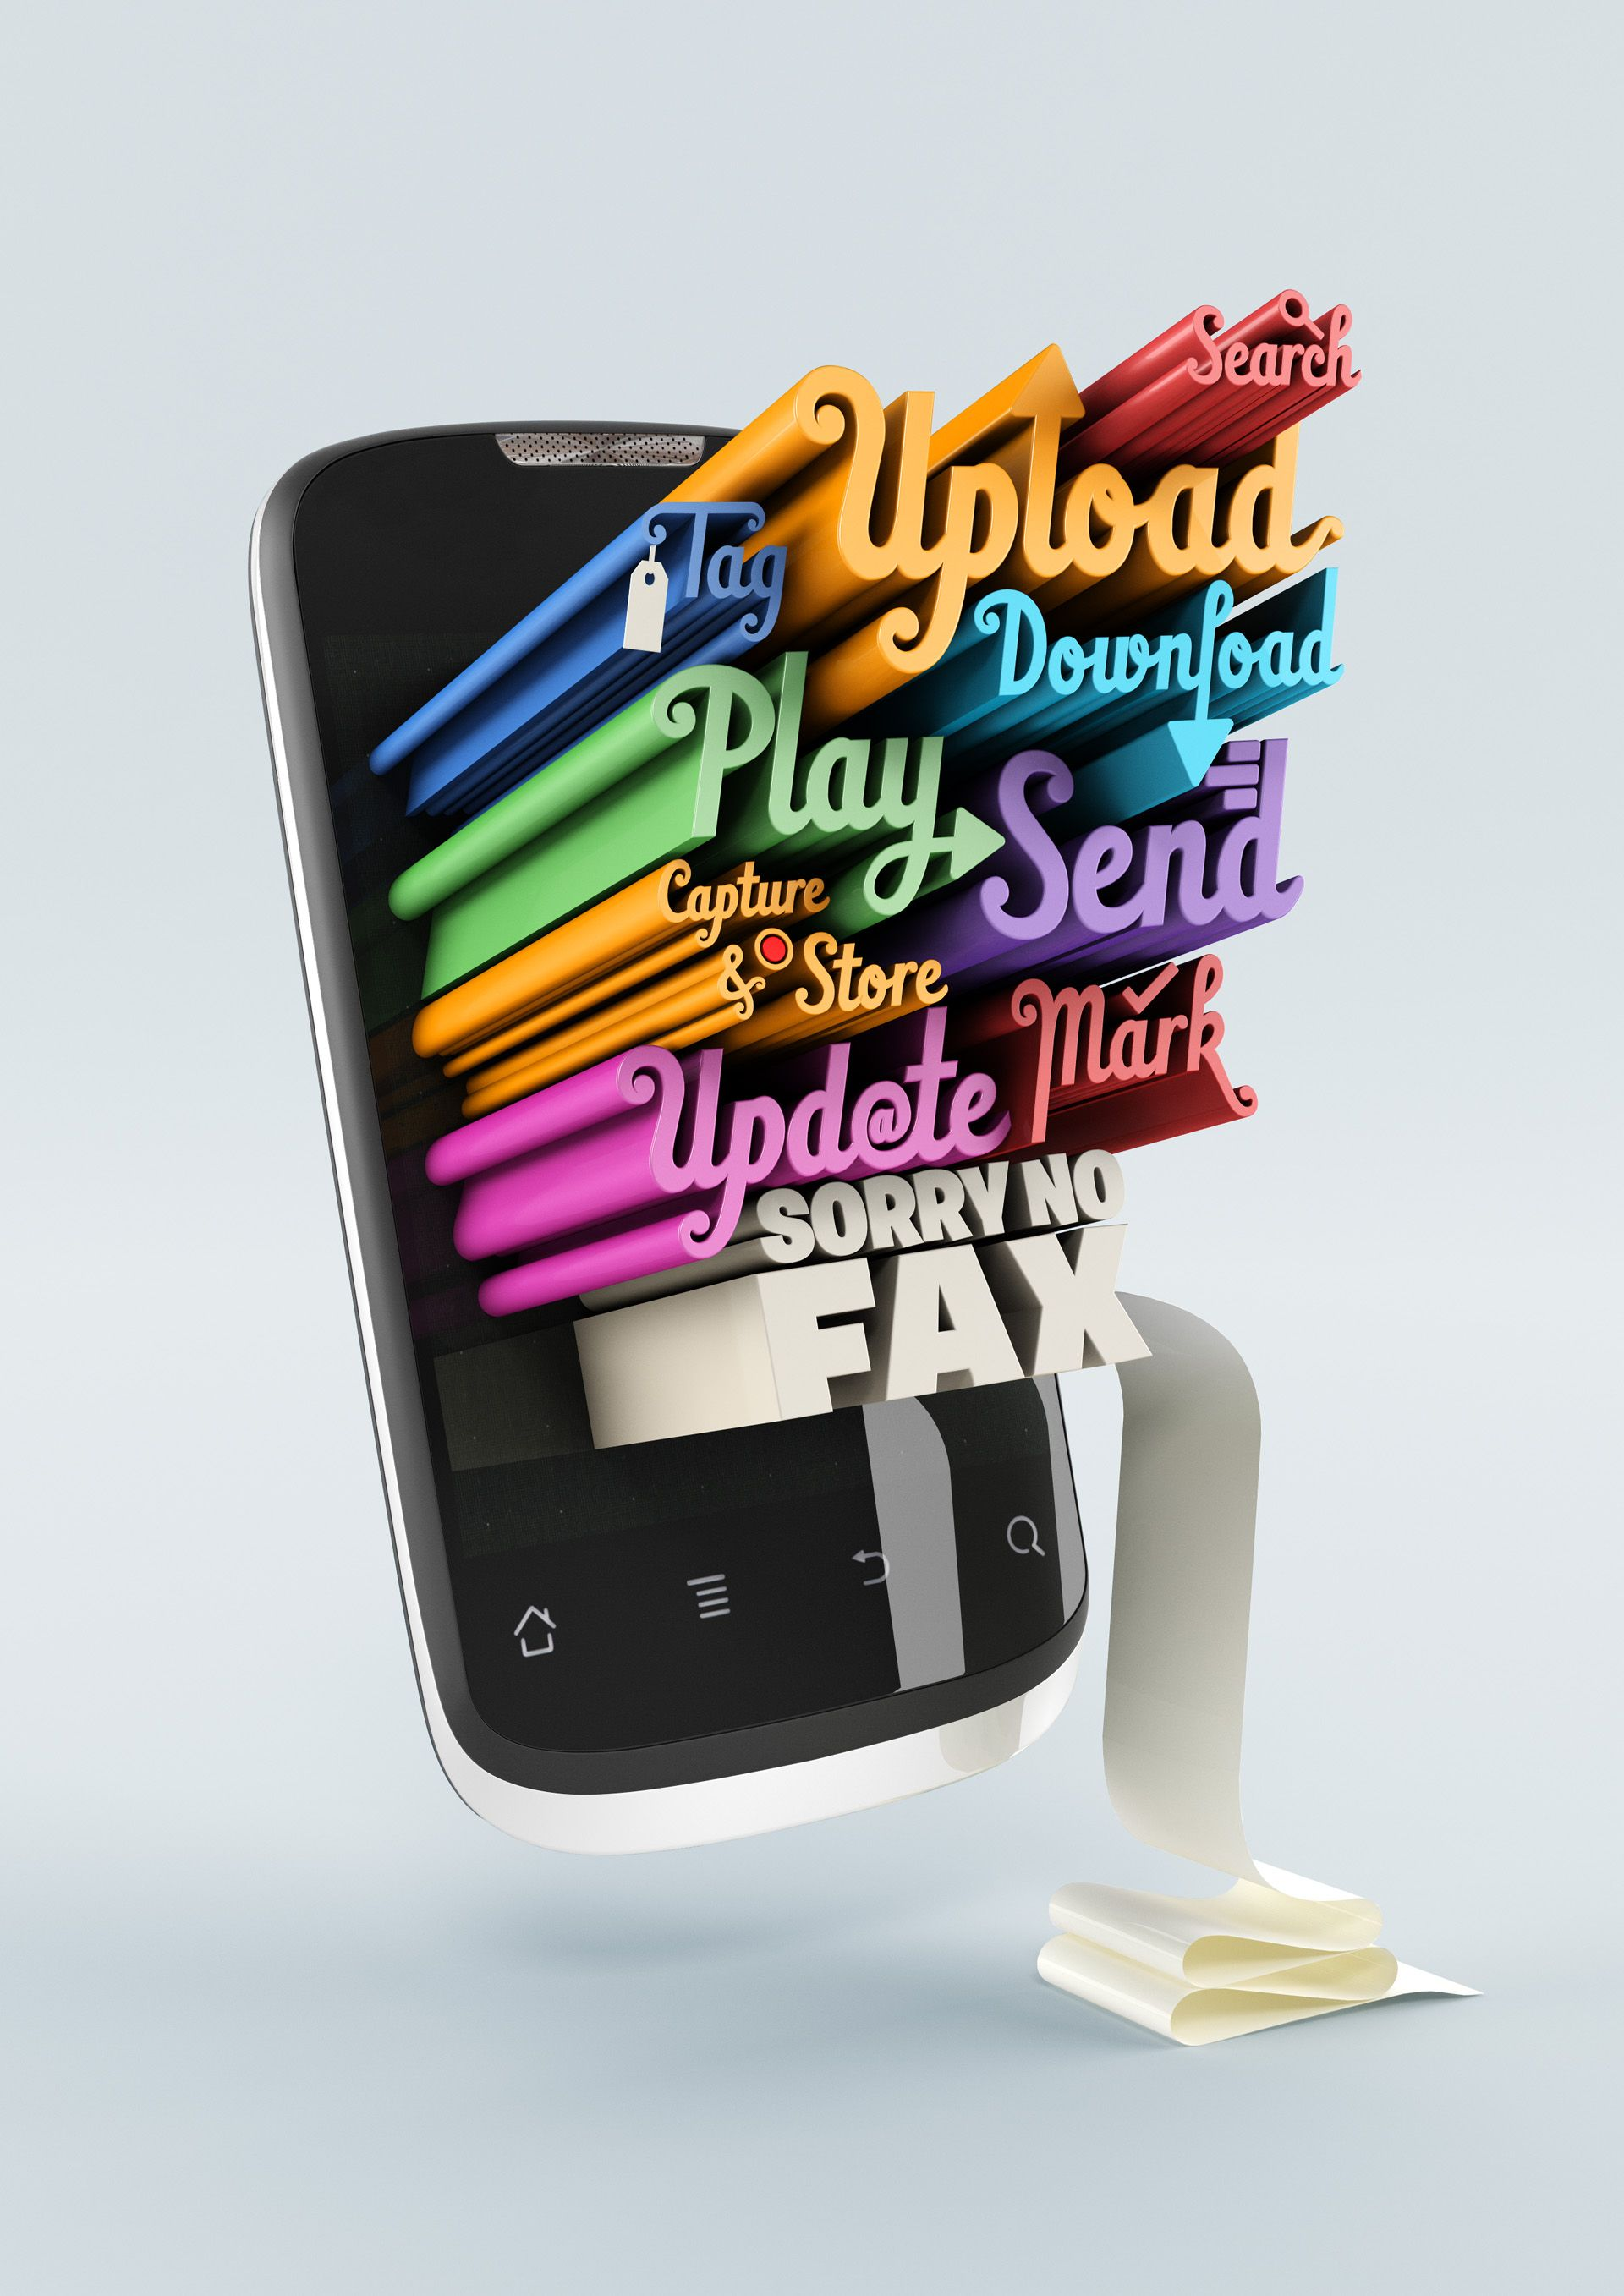 Huawei - Advertising campaign, 3D typography, mobile ...